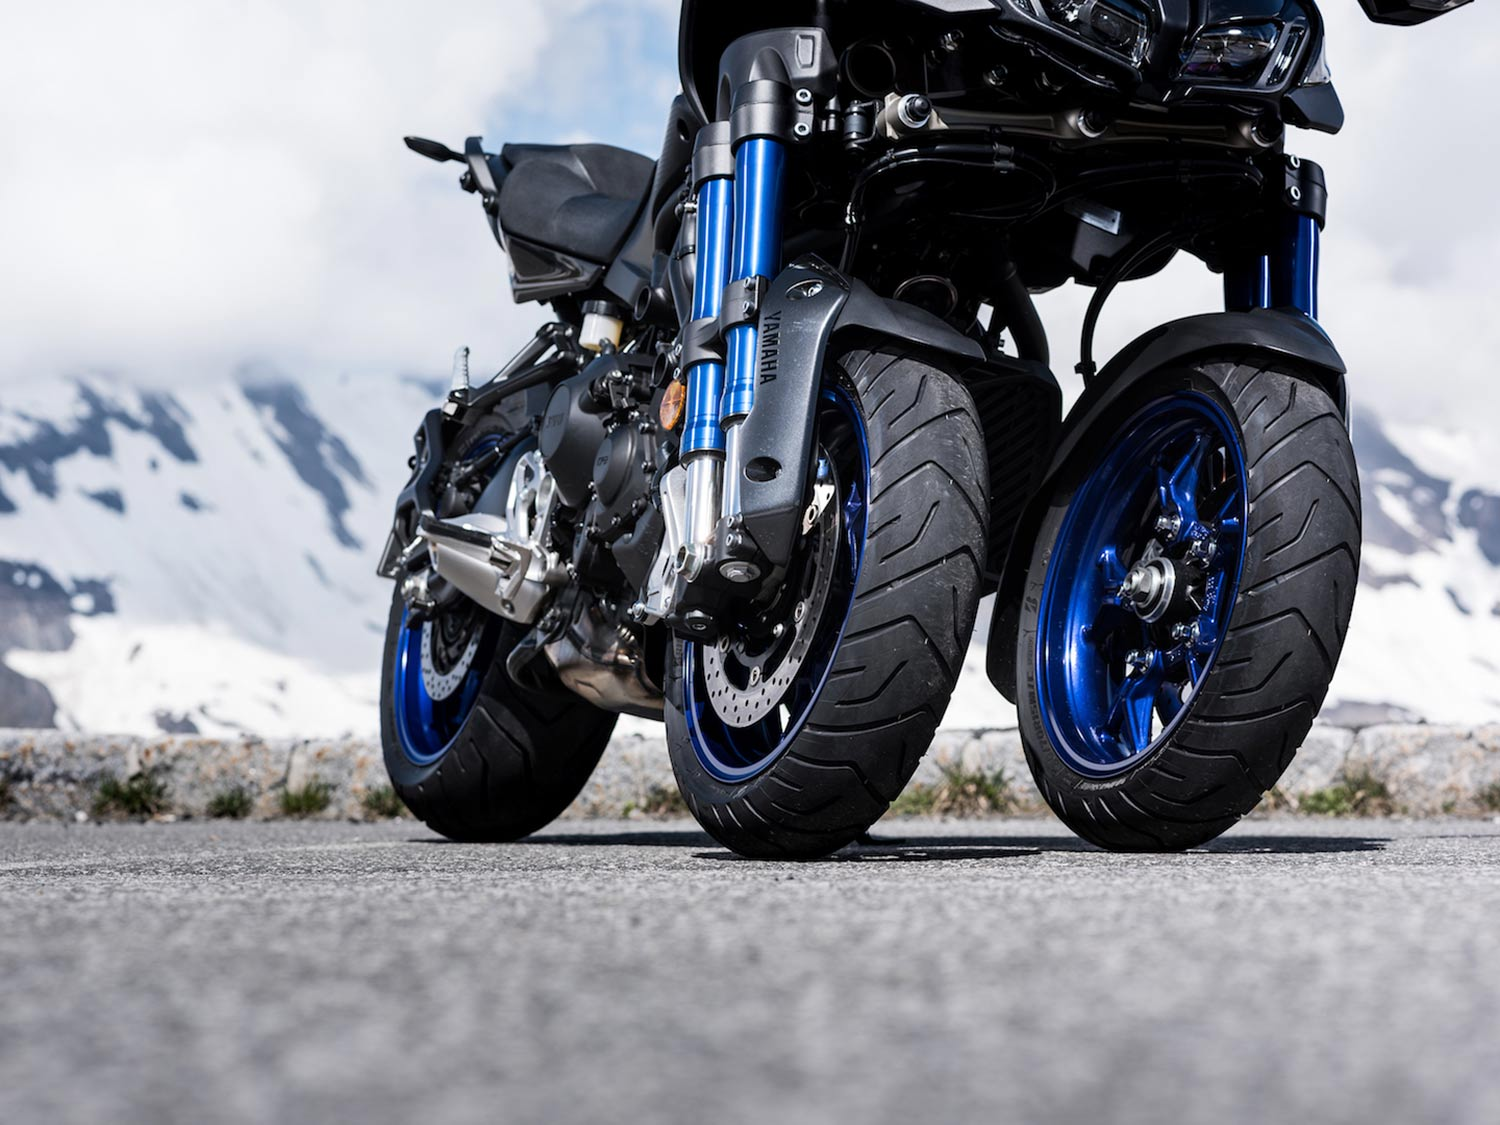 Making Sense Of The Yamaha Niken A Motorcycle With Two Front Ends